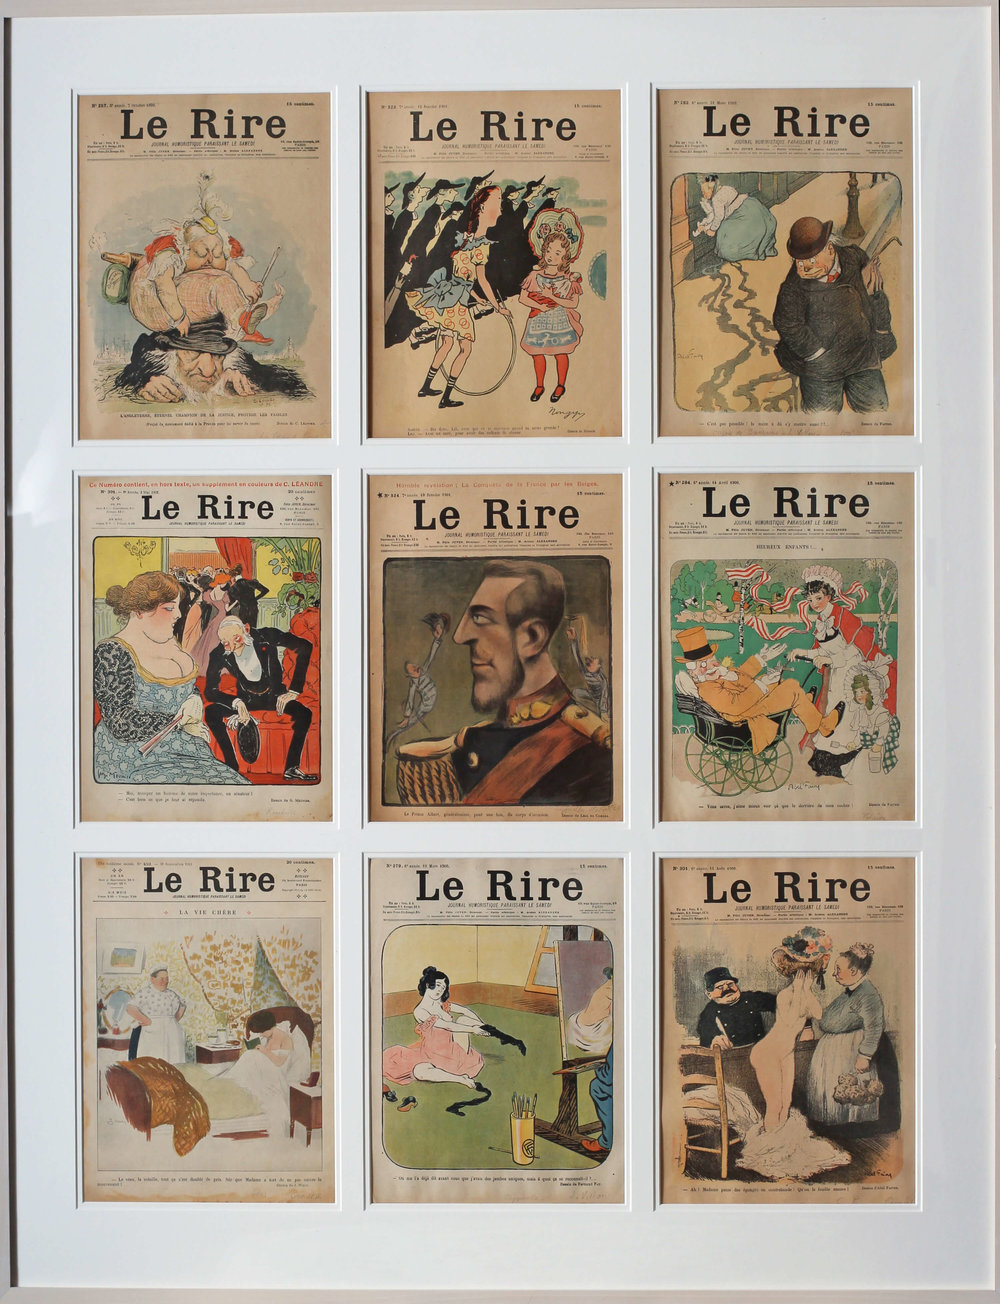 Set Of 9 Original Magazine Covers For the French Belle Epoque Publication 'Le Rire', Editions From 1899 – 1911.  They are mainly towards the former date.  114.3 X 89.2cm. (including frame)  It would be extremely difficult to find another set like this with so many examples in such good condition.  There is a little bit of water staining, slight dirt, overall the colours are extremely strong.  The paper remains in a slightly faded but authentic state.   Price: £2000